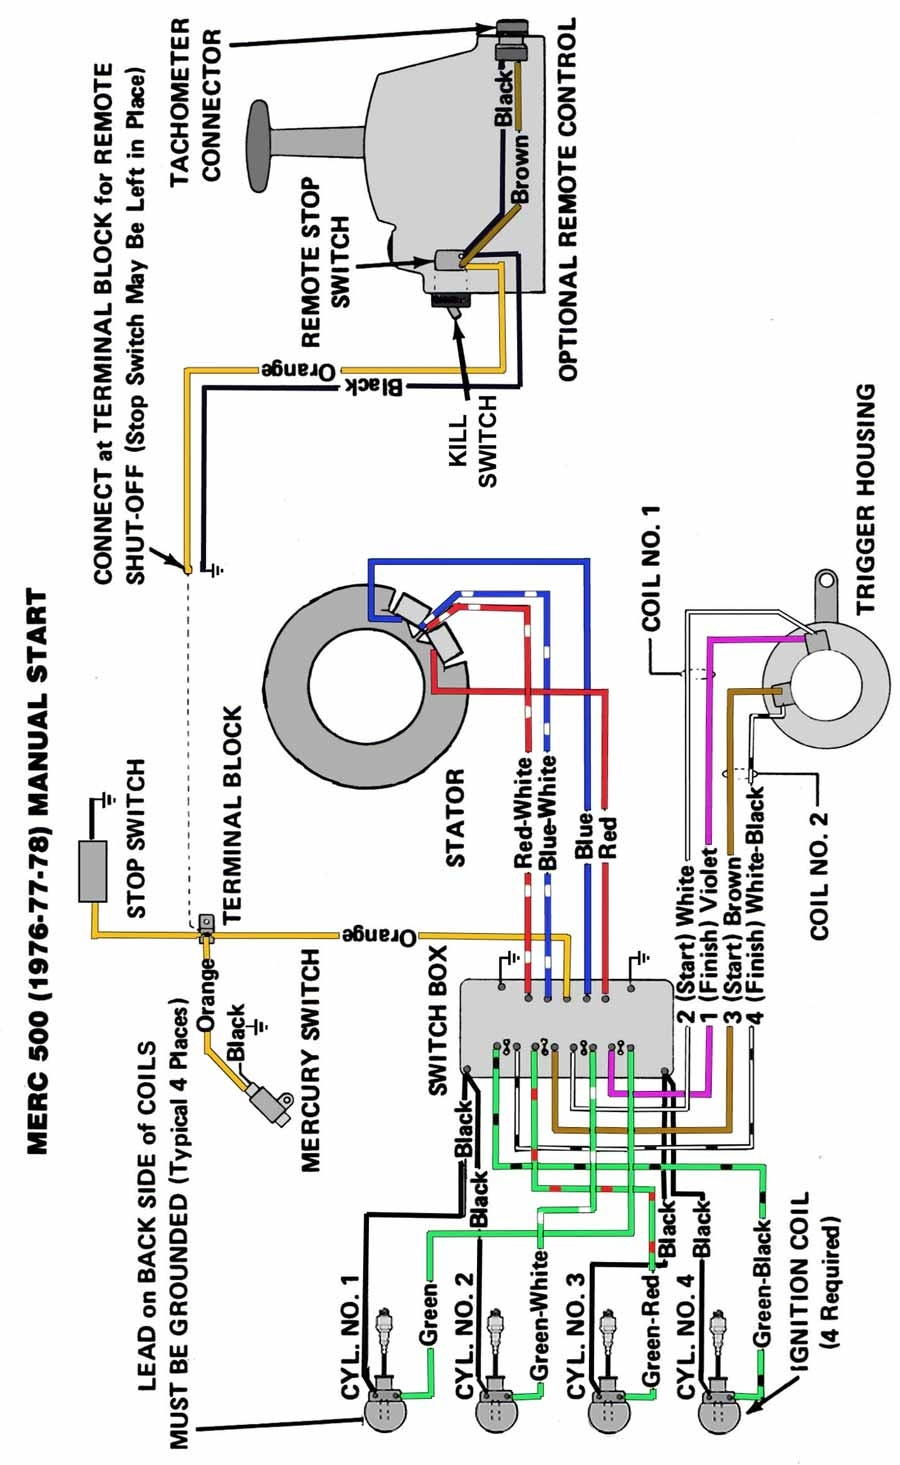 mercury outboard wiring diagrams mastertech marin intended for 76 evinrude wiring diagram?resize\\\\\\\\\\\\\\\=665%2C1082\\\\\\\\\\\\\\\&ssl\\\\\\\\\\\\\\\=1 mercury outboard ignition switch diagram color coded wiring Boat Ignition Switch Wiring Diagram at creativeand.co